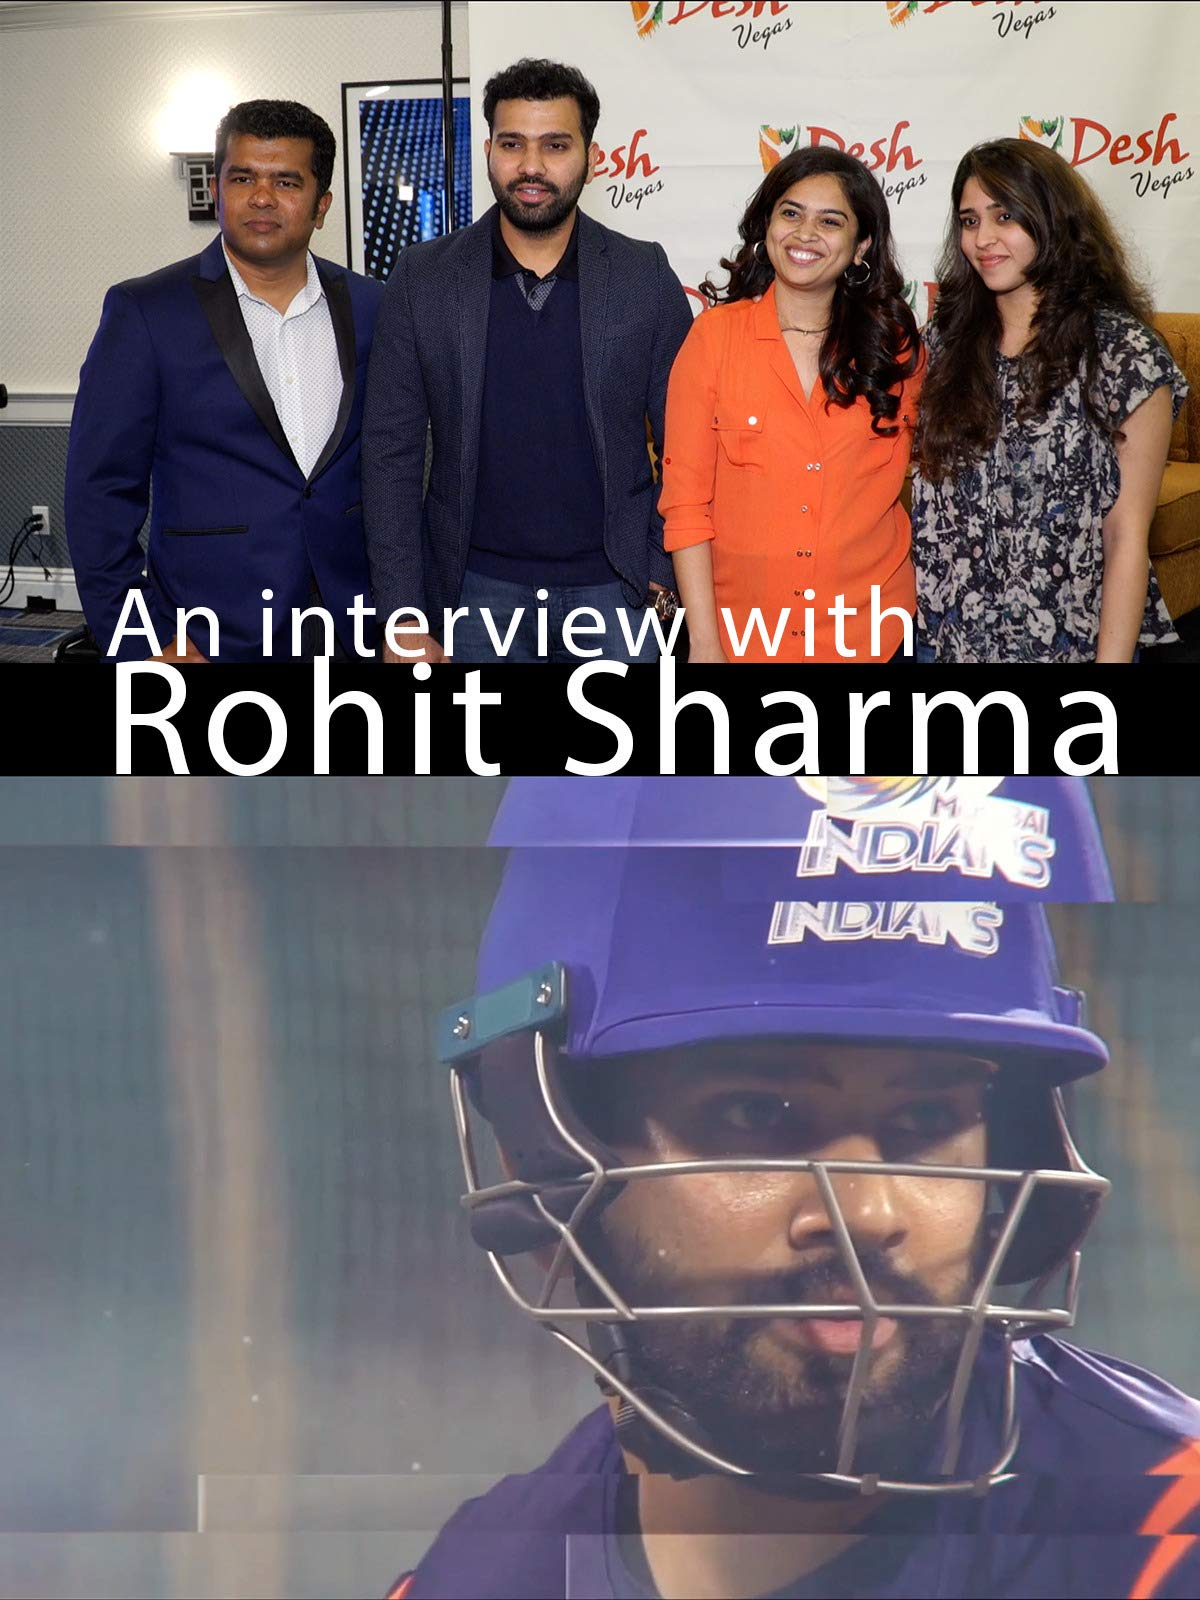 An interview with Rohit Sharma on Amazon Prime Instant Video UK